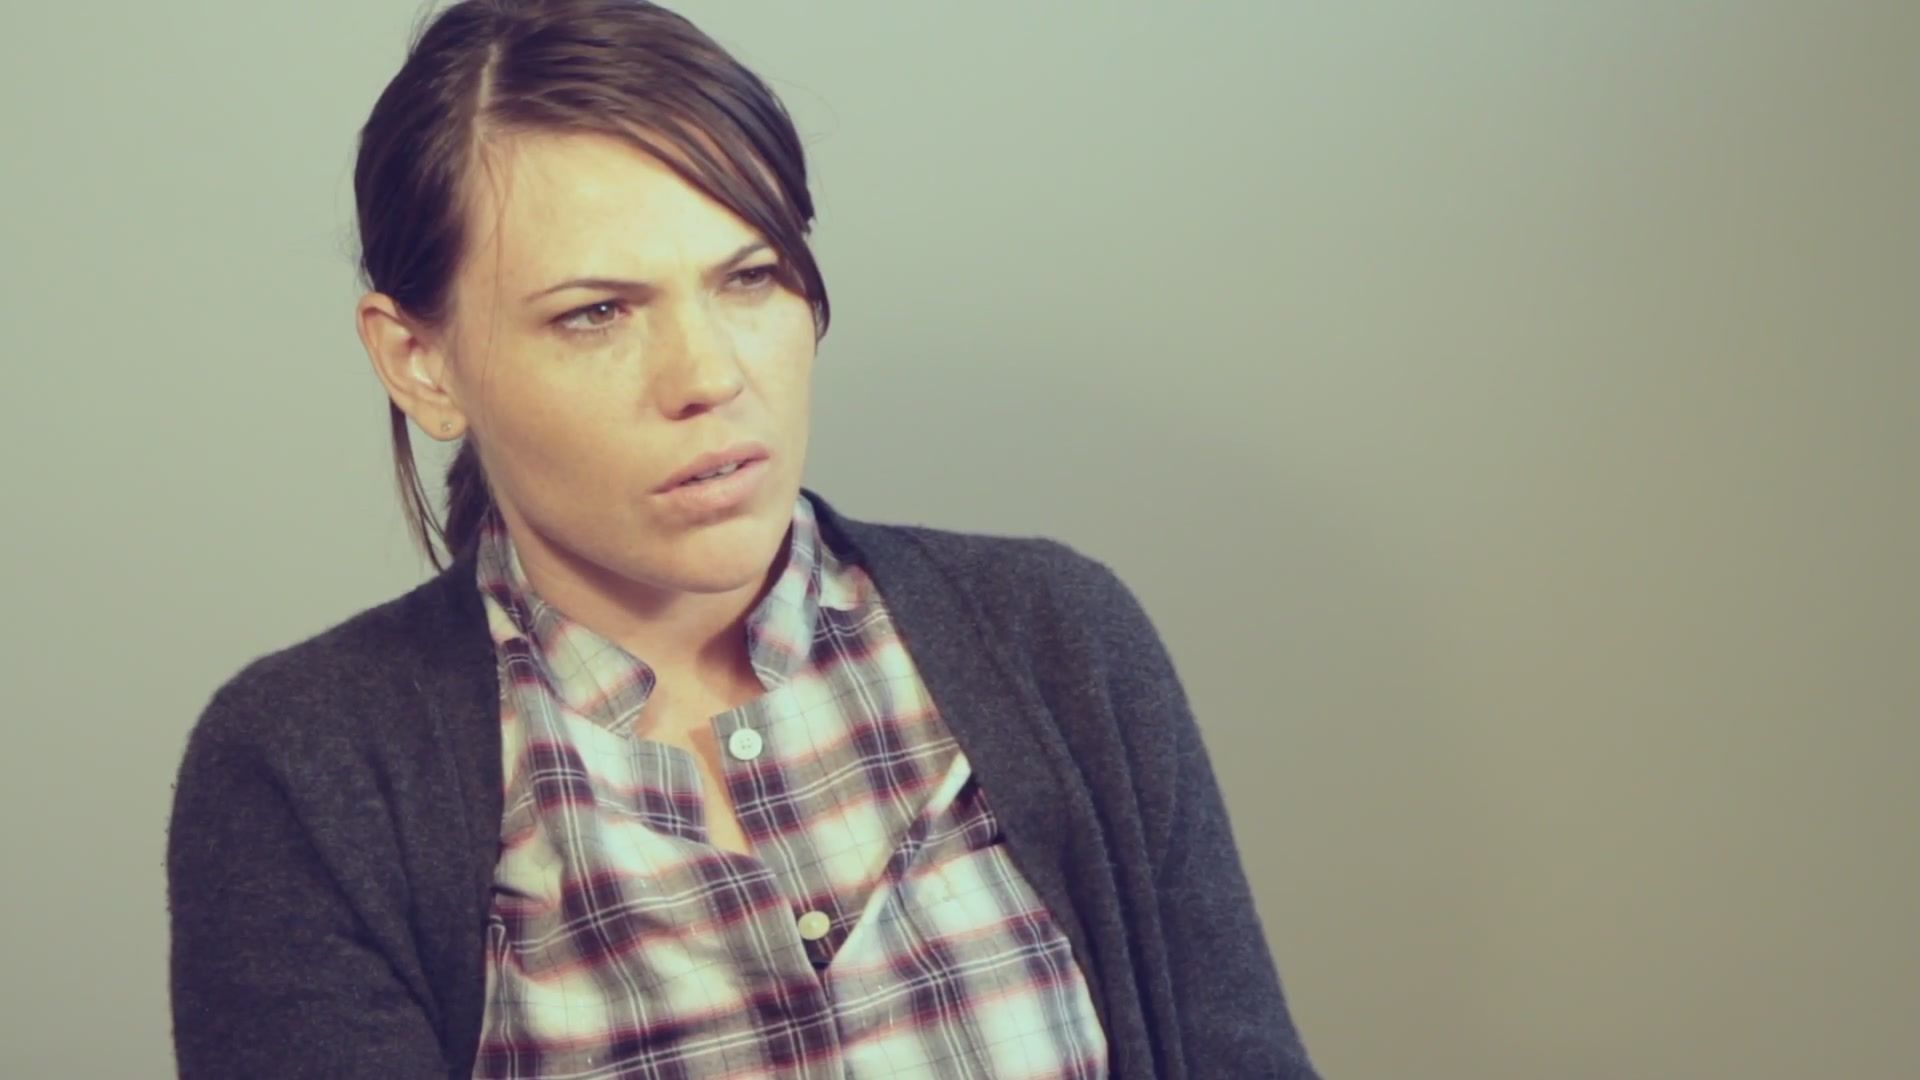 Clea Duvall hd wallpaper Wallpaper